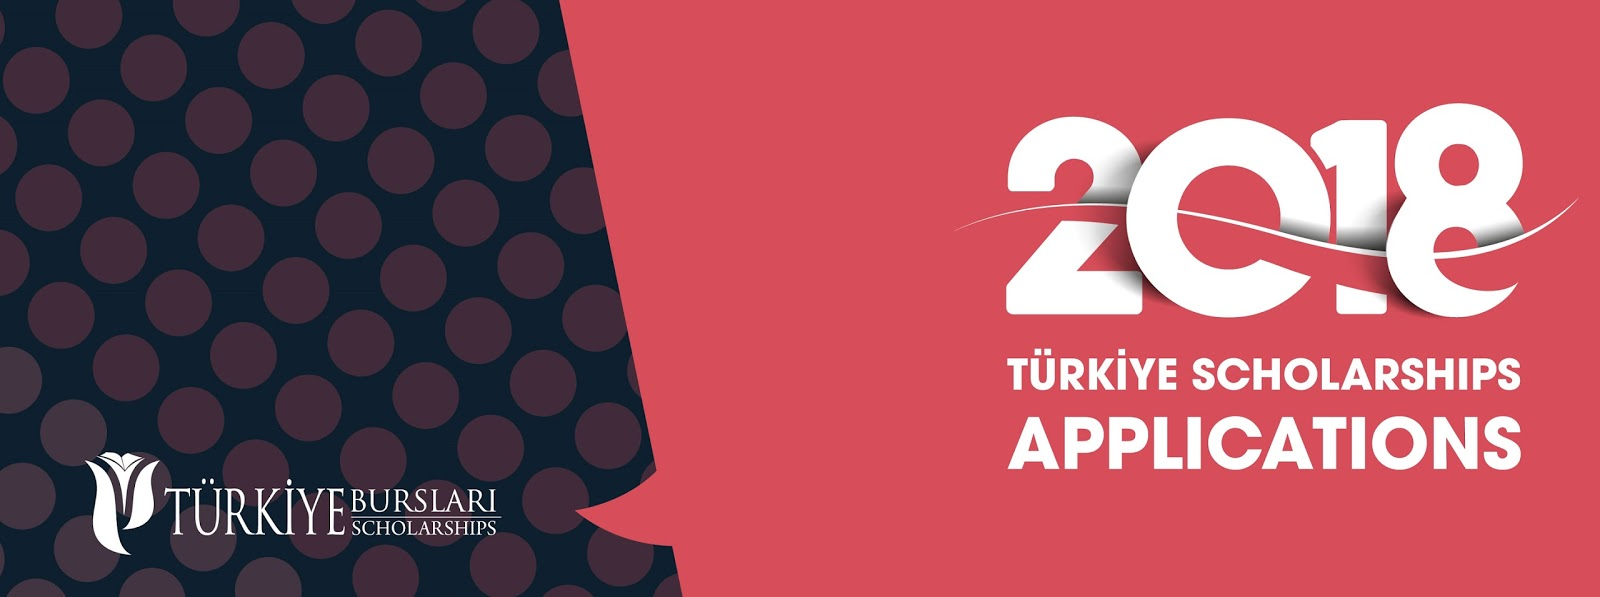 Research Fellowship Programme - Türkiye